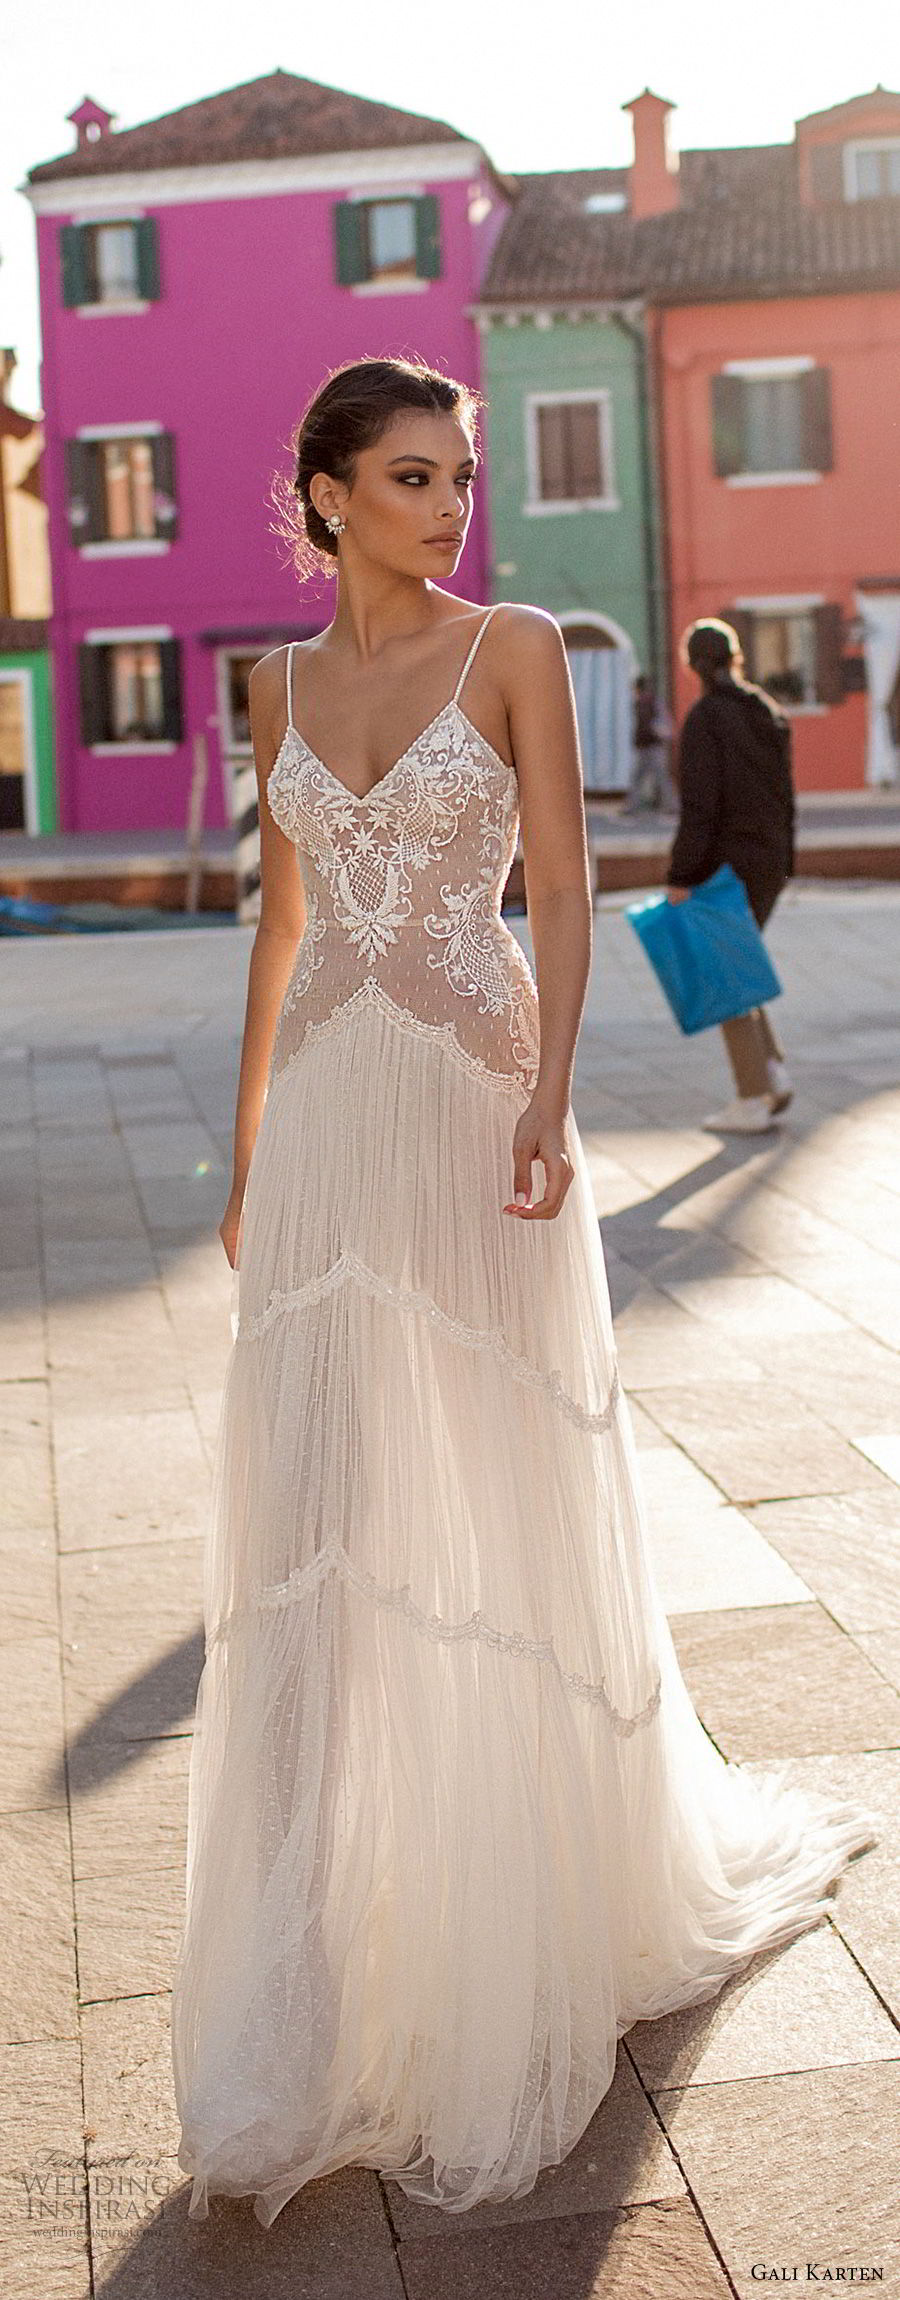 gali karten 2018 bridal spaghetti strap sweetheart neckline heavily embellished bodice romantic soft a line wedding dress open scoop back sweep train (10) lv